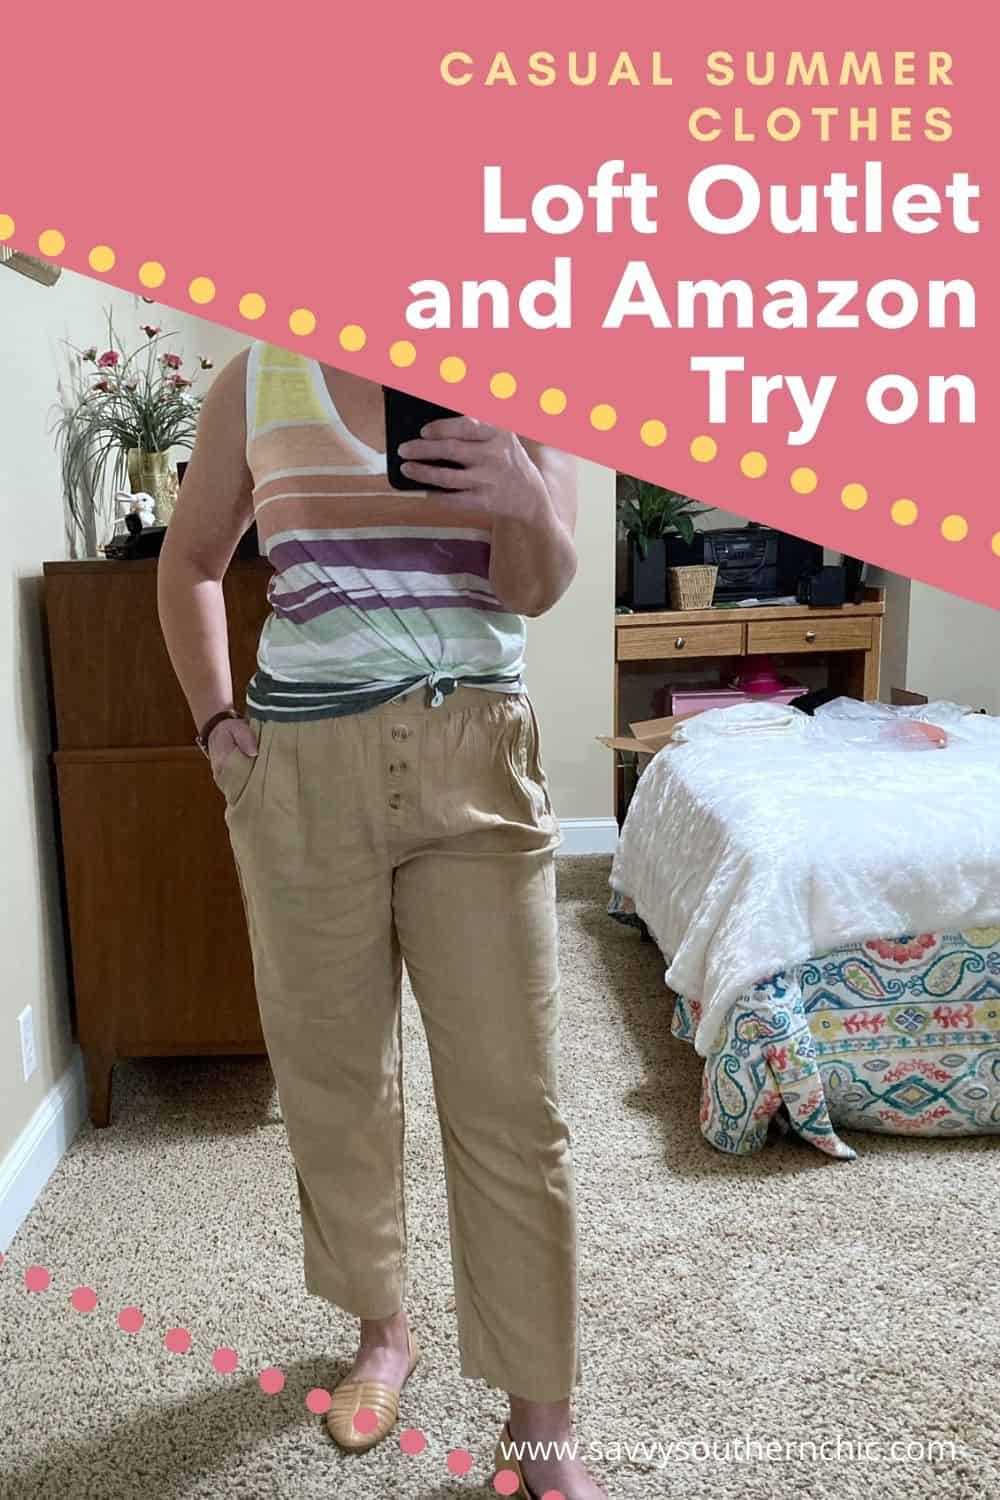 Casual Summer Clothes Try On: Loft Outlet and Amazon